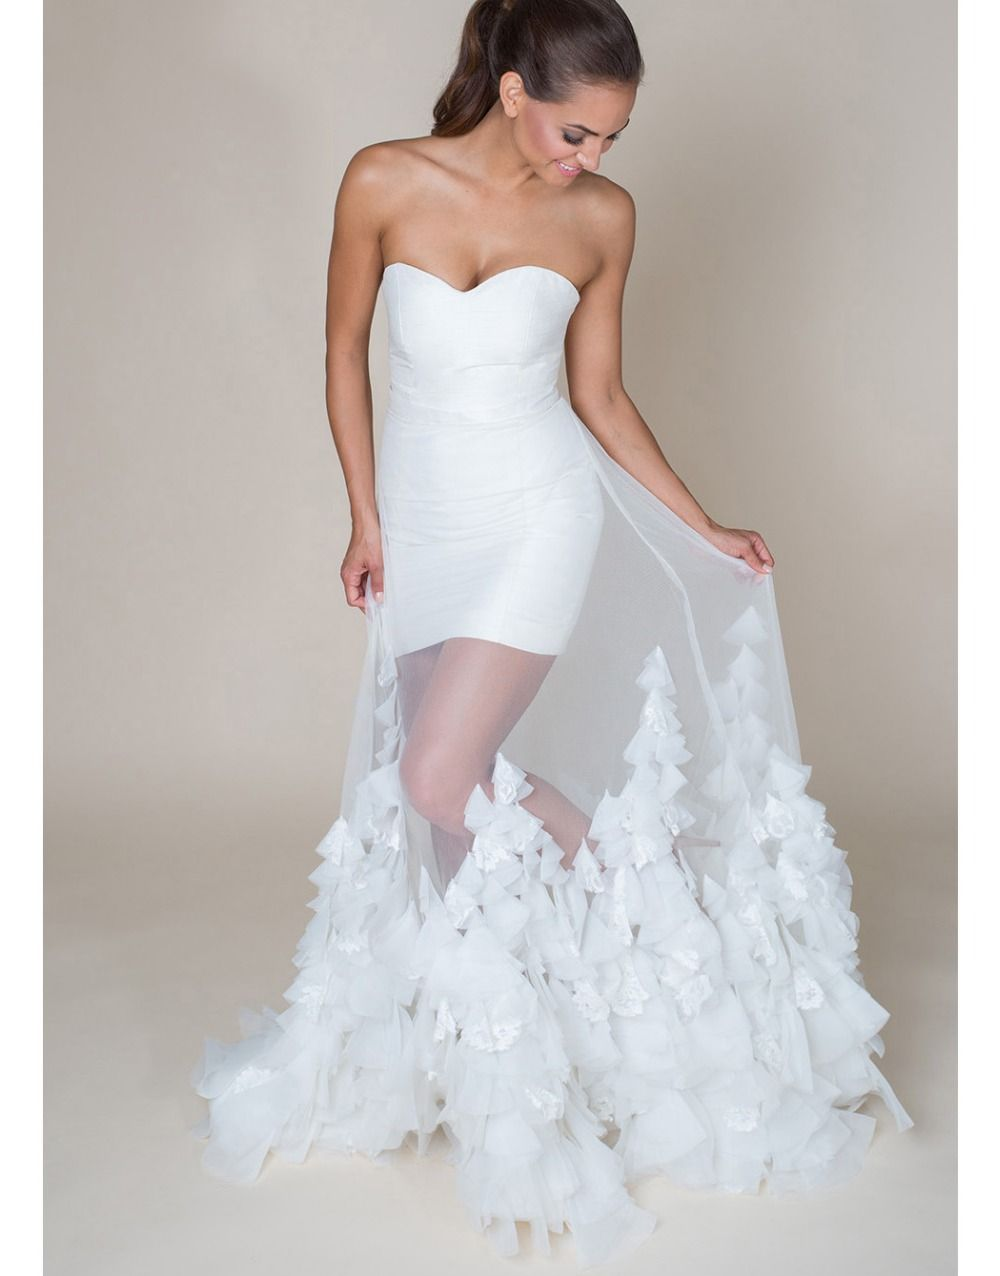 Cheap Dress Dimensions Buy Quality Wedding Dresses With Short - Td Wedding Dresses